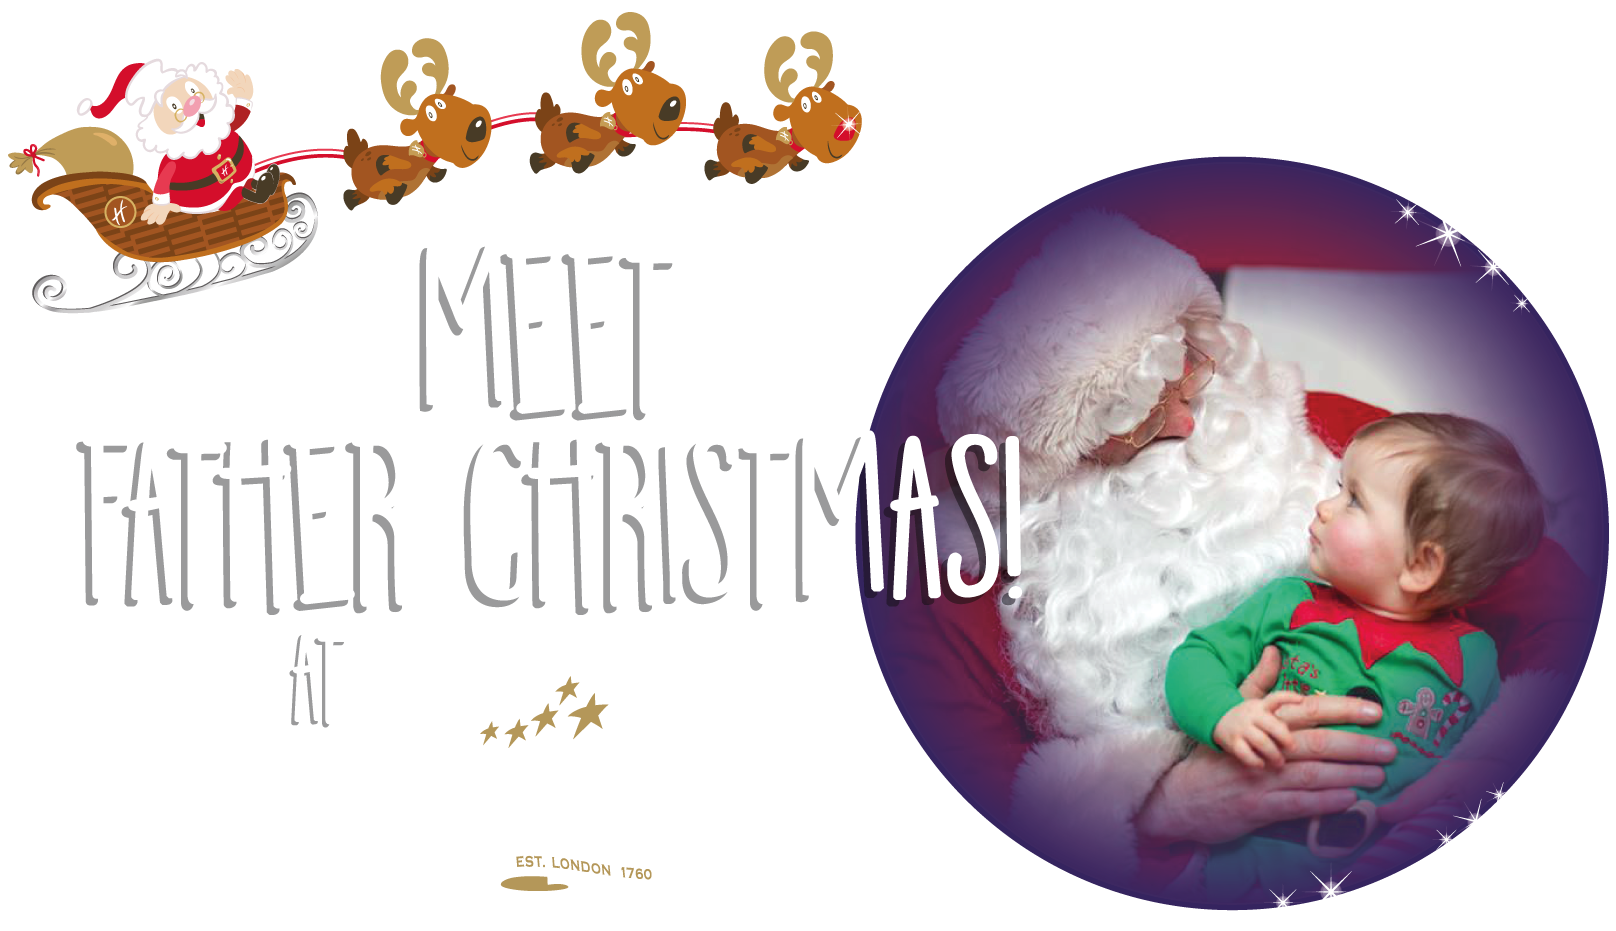 Meet Father Christmas at Hamleys